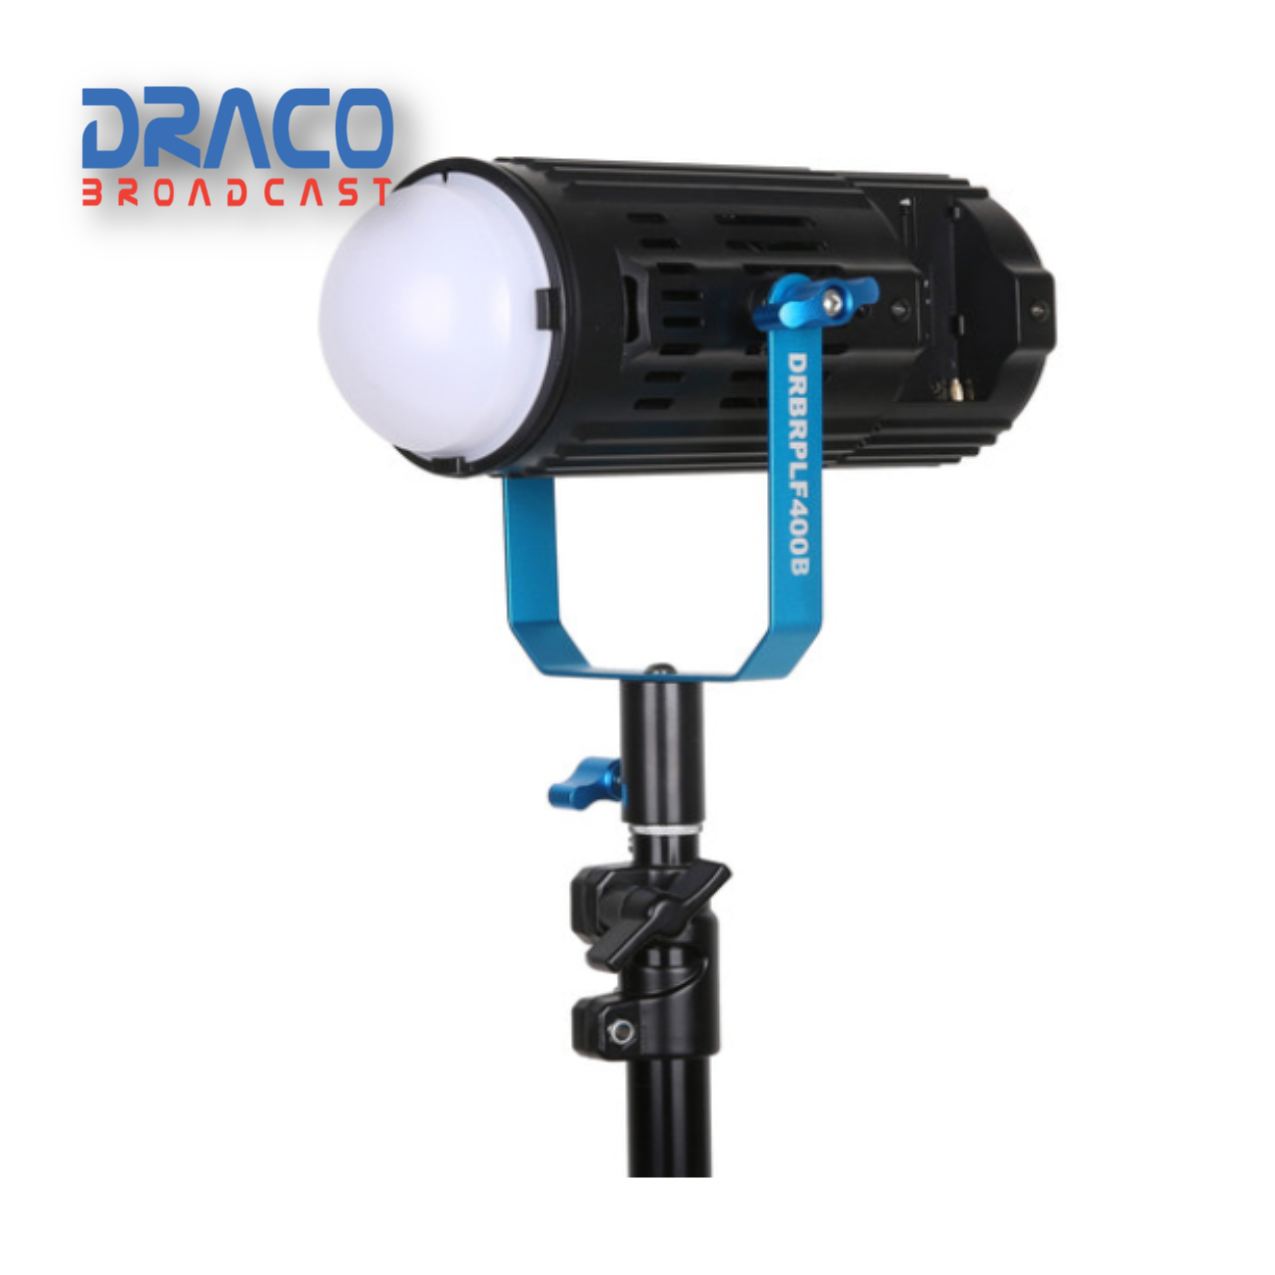 Dracast Boltray Plus 400 Daylight 3 Light Kit with Dual NP-F Battery Plates and Injection Molded Travel Case Continuous Lighting Draco Broadcast